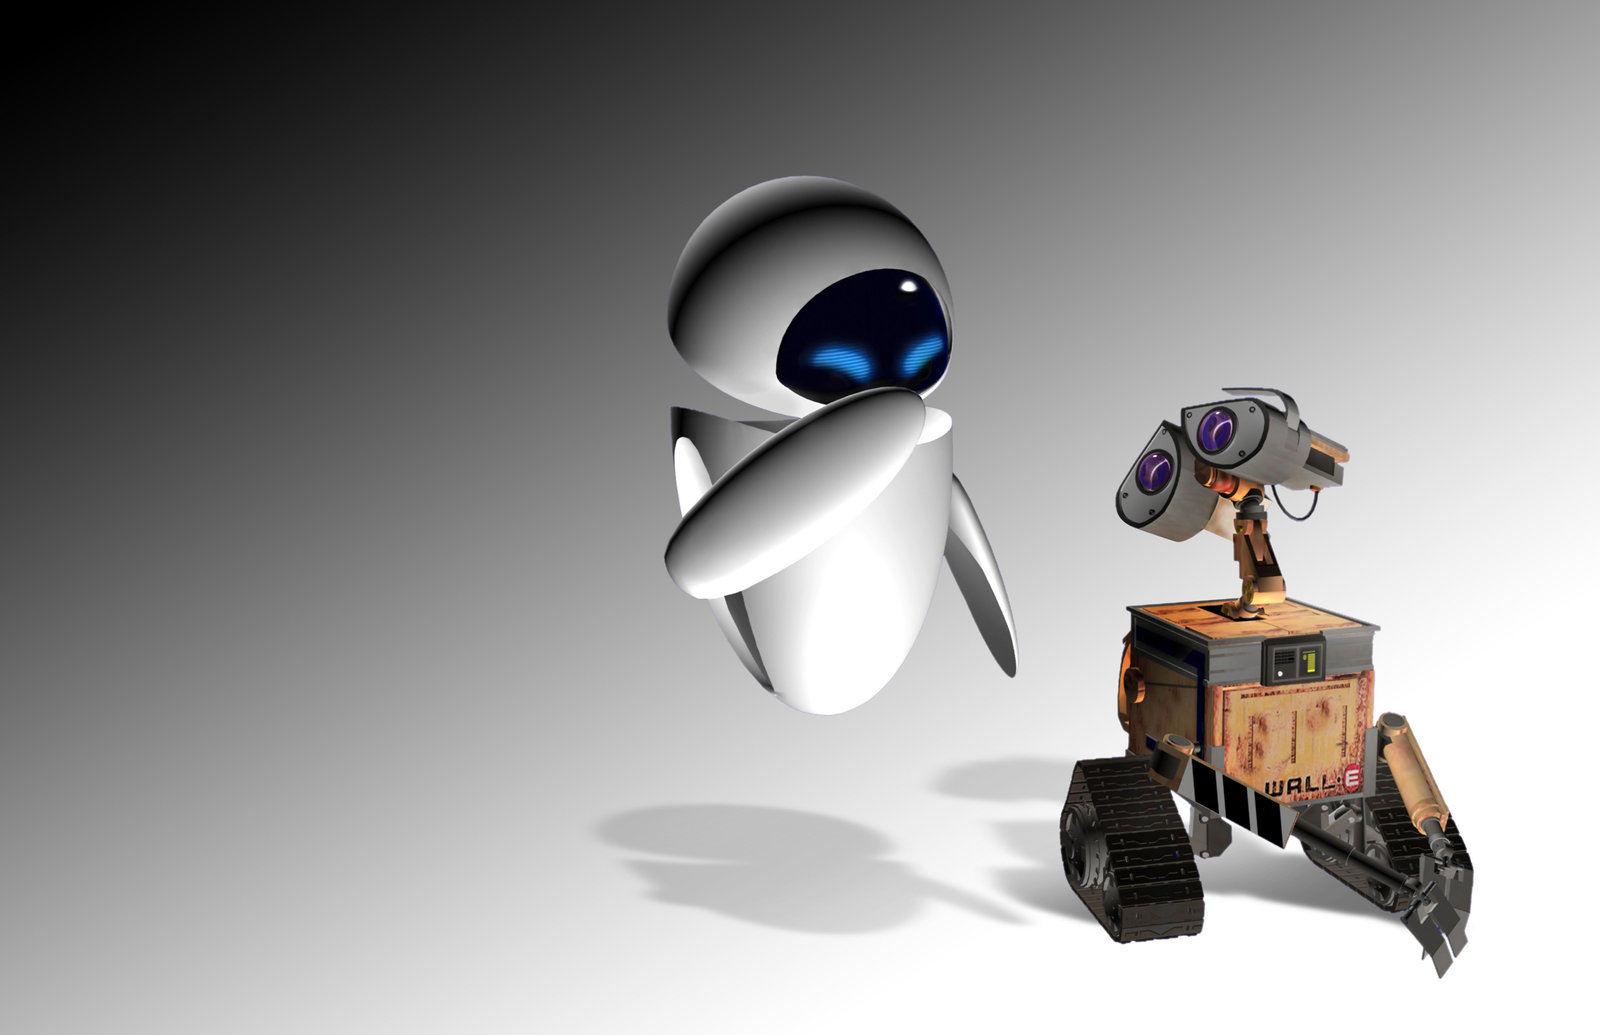 Eve WALL E Wallpapers Group 73